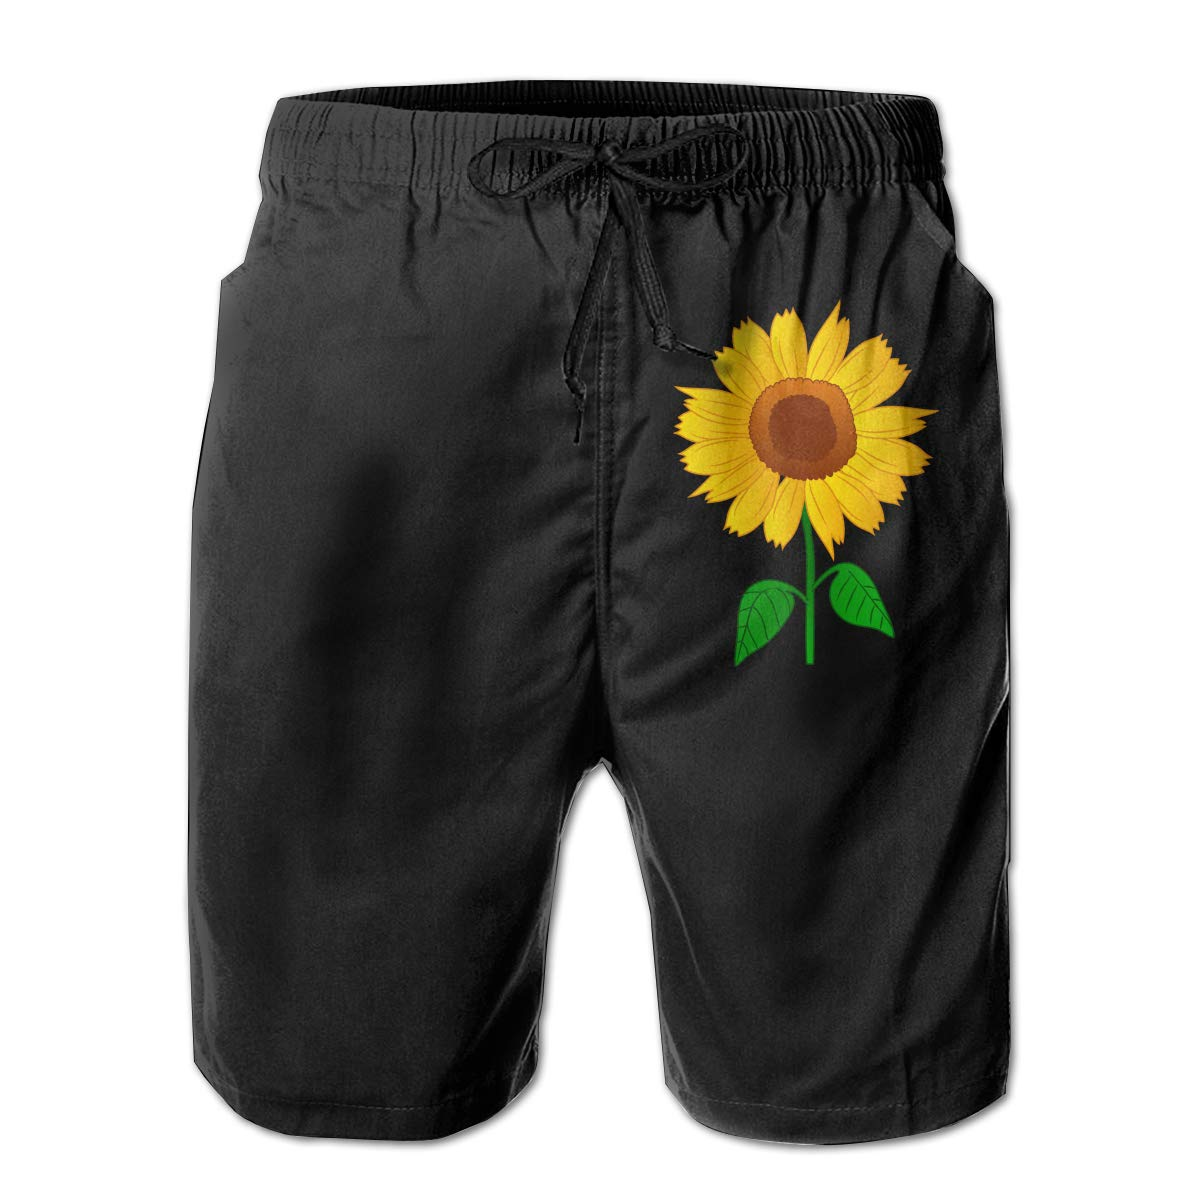 Xk7@KU Mens Casual Swim Trunks Polyester Sunflower Clipart Board Shorts with Pockets